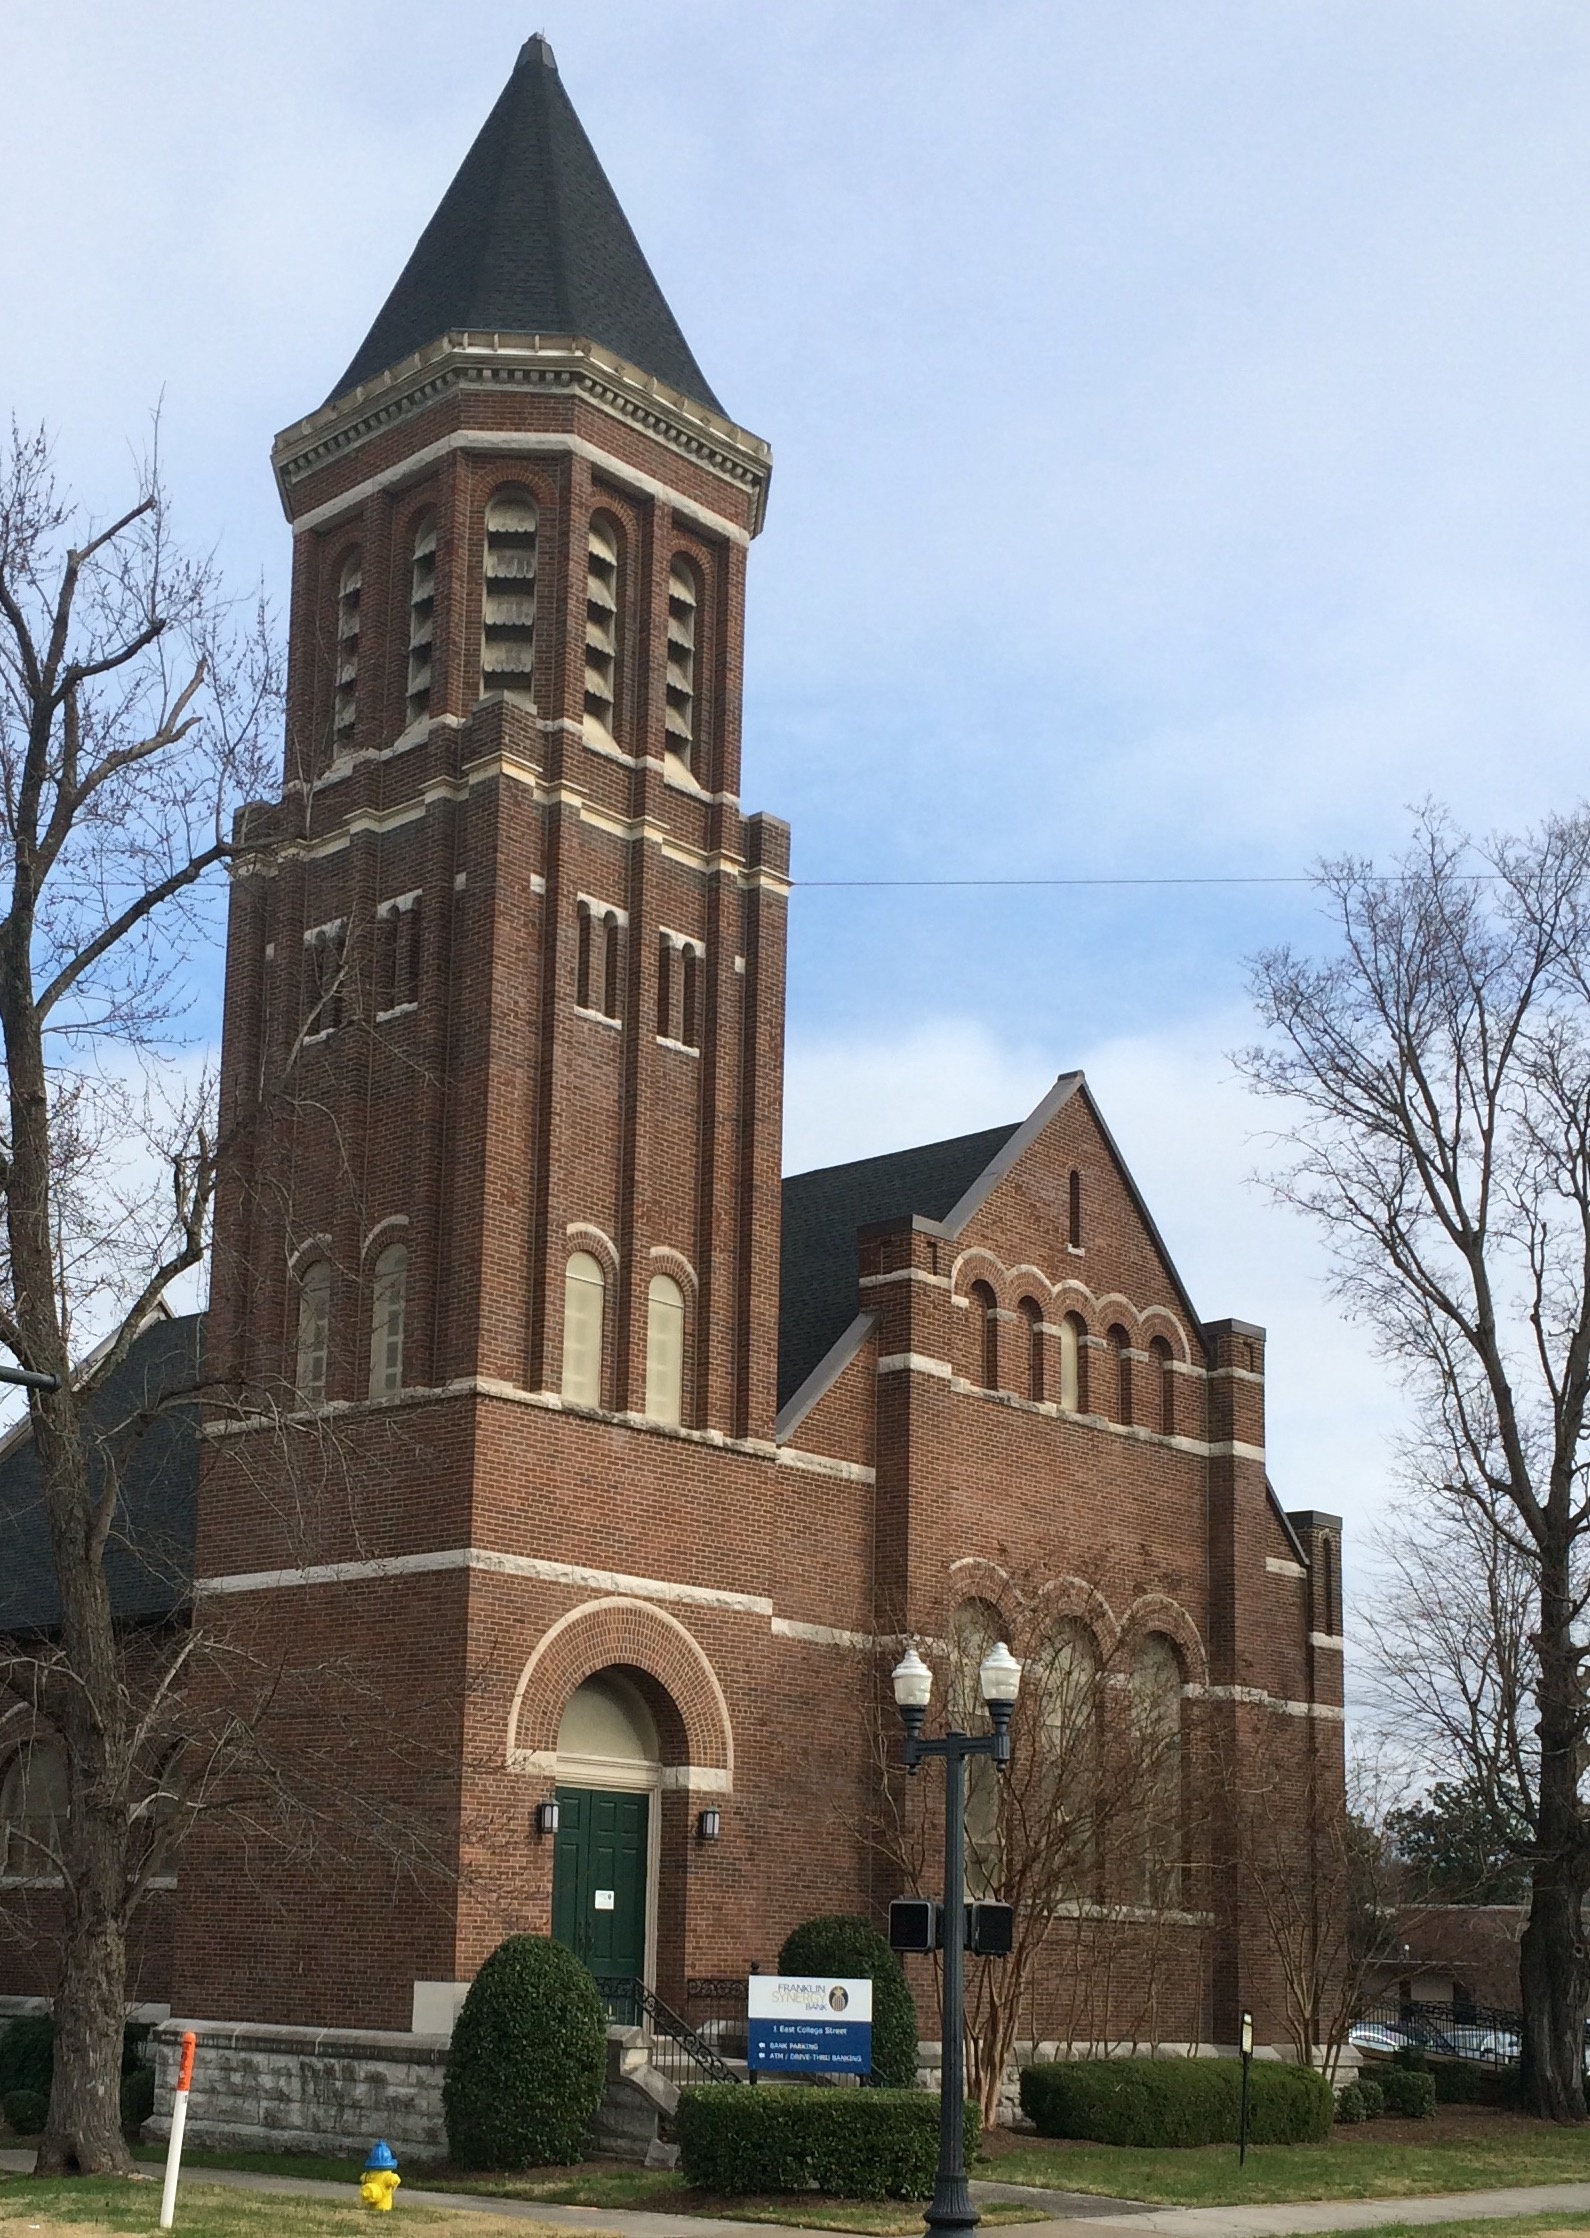 What will happen to the old First Methodist Church building in downtown Murfreesboro?